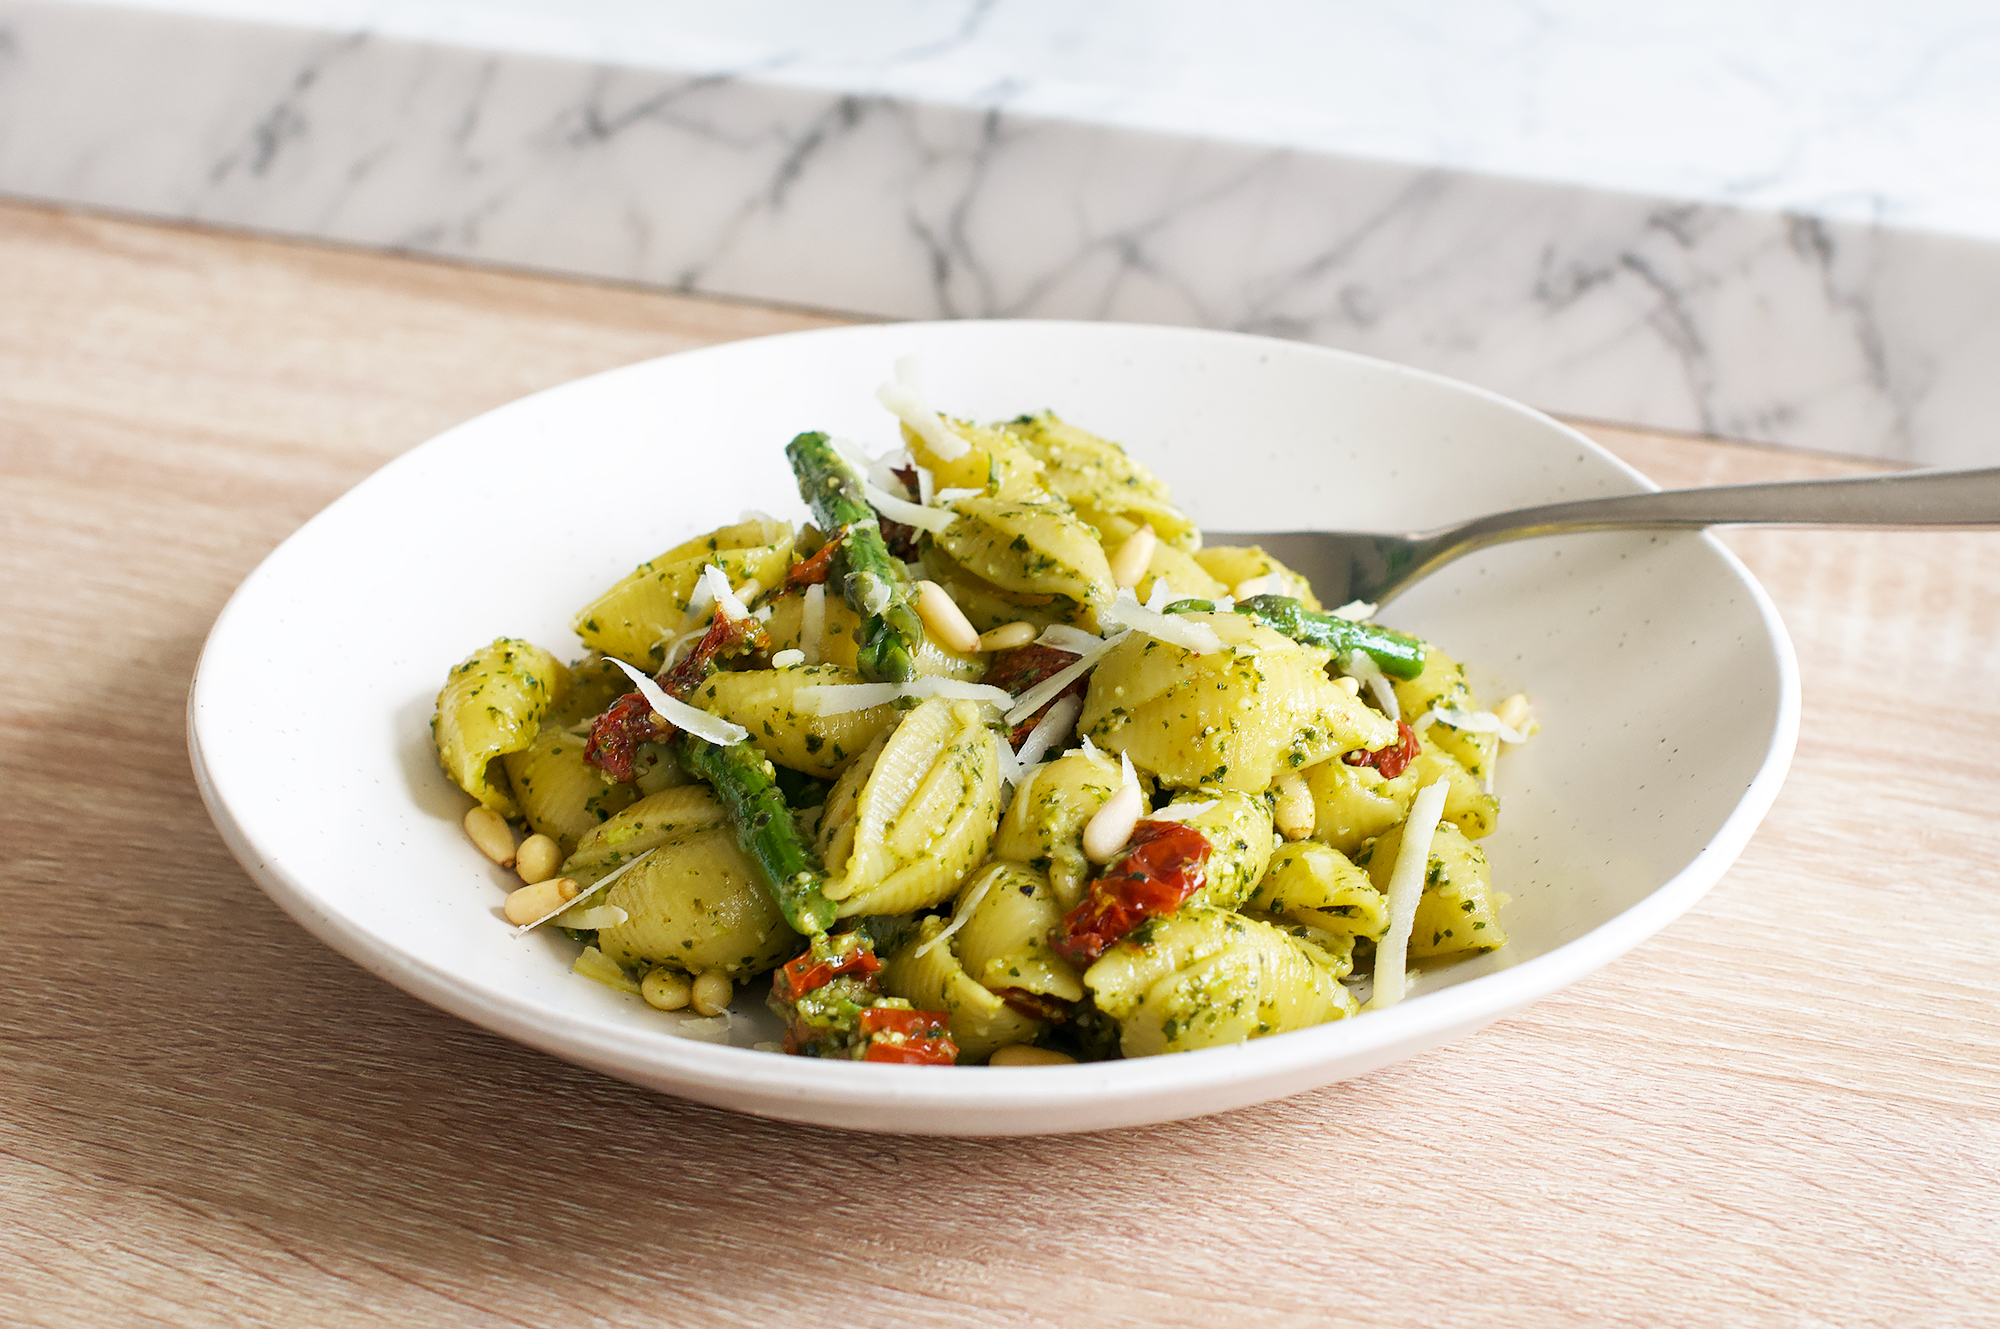 Pesto pasta salad with green asparagus and sun-dried tomato recipe